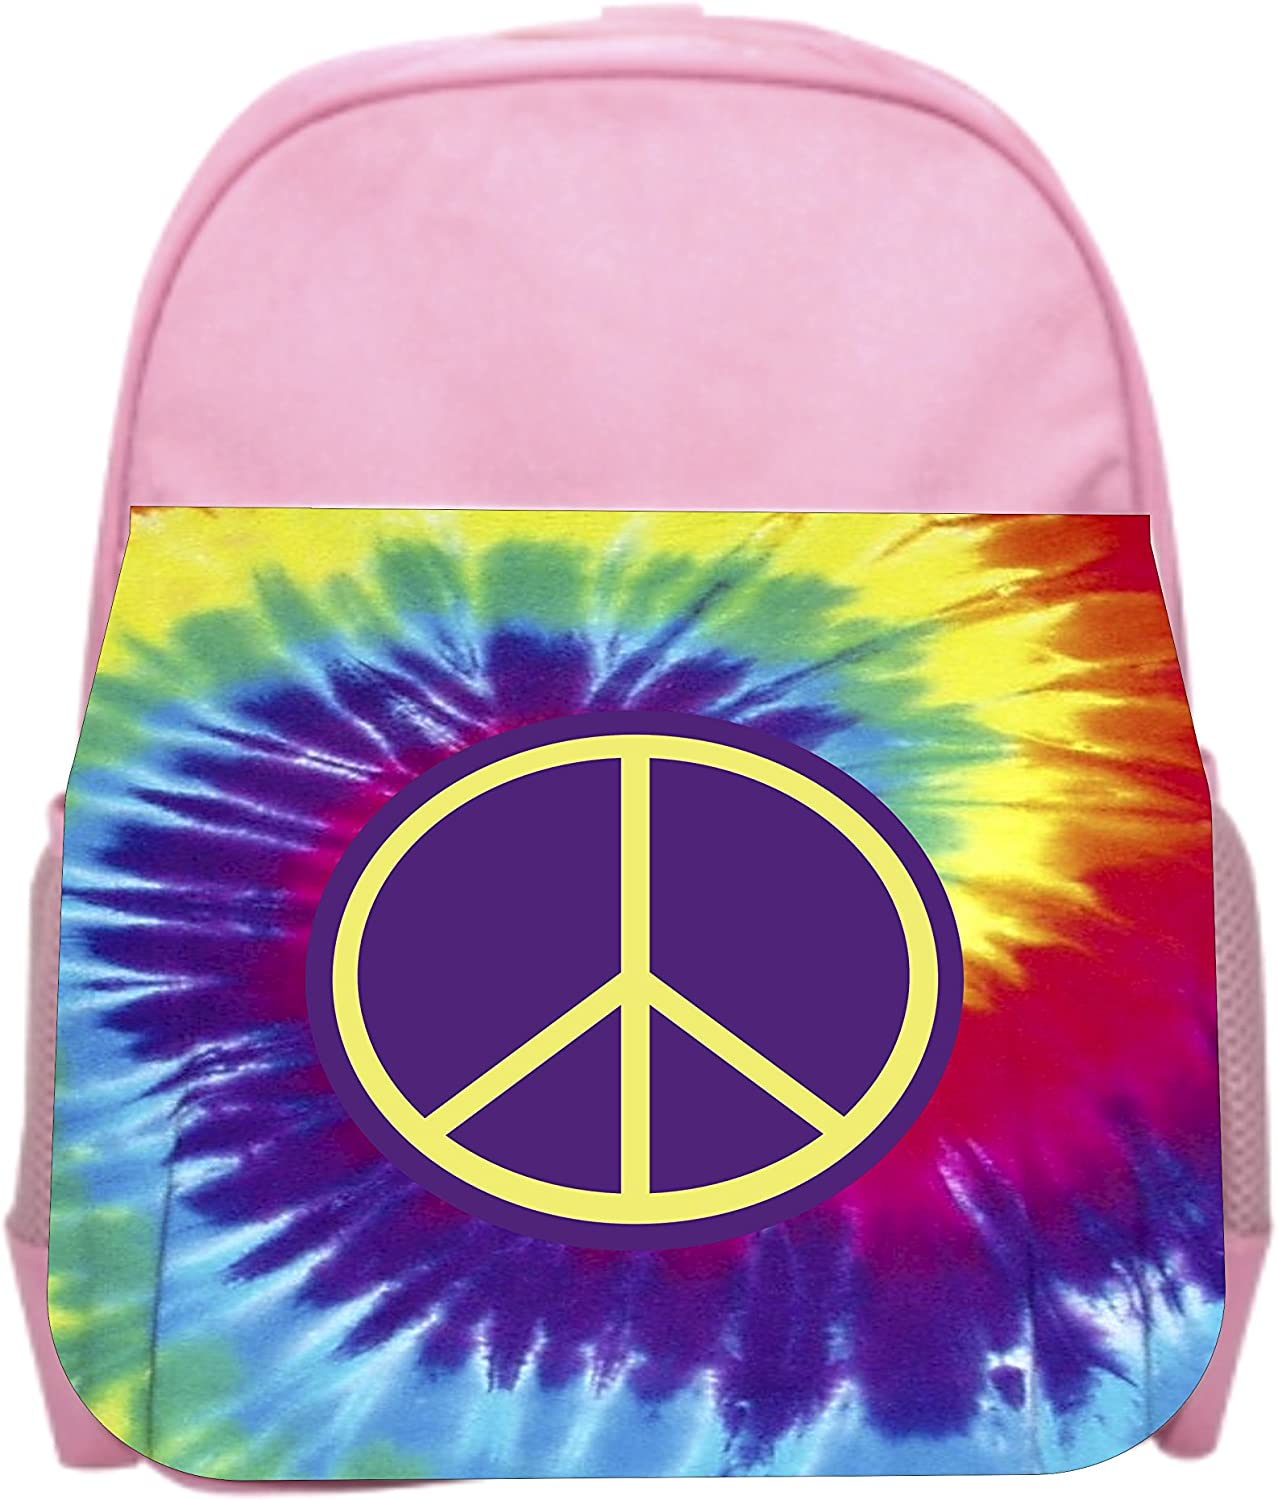 Peace Tie Dye Pink Girls Preschool Toddler Backpack /& Lunch Box Set